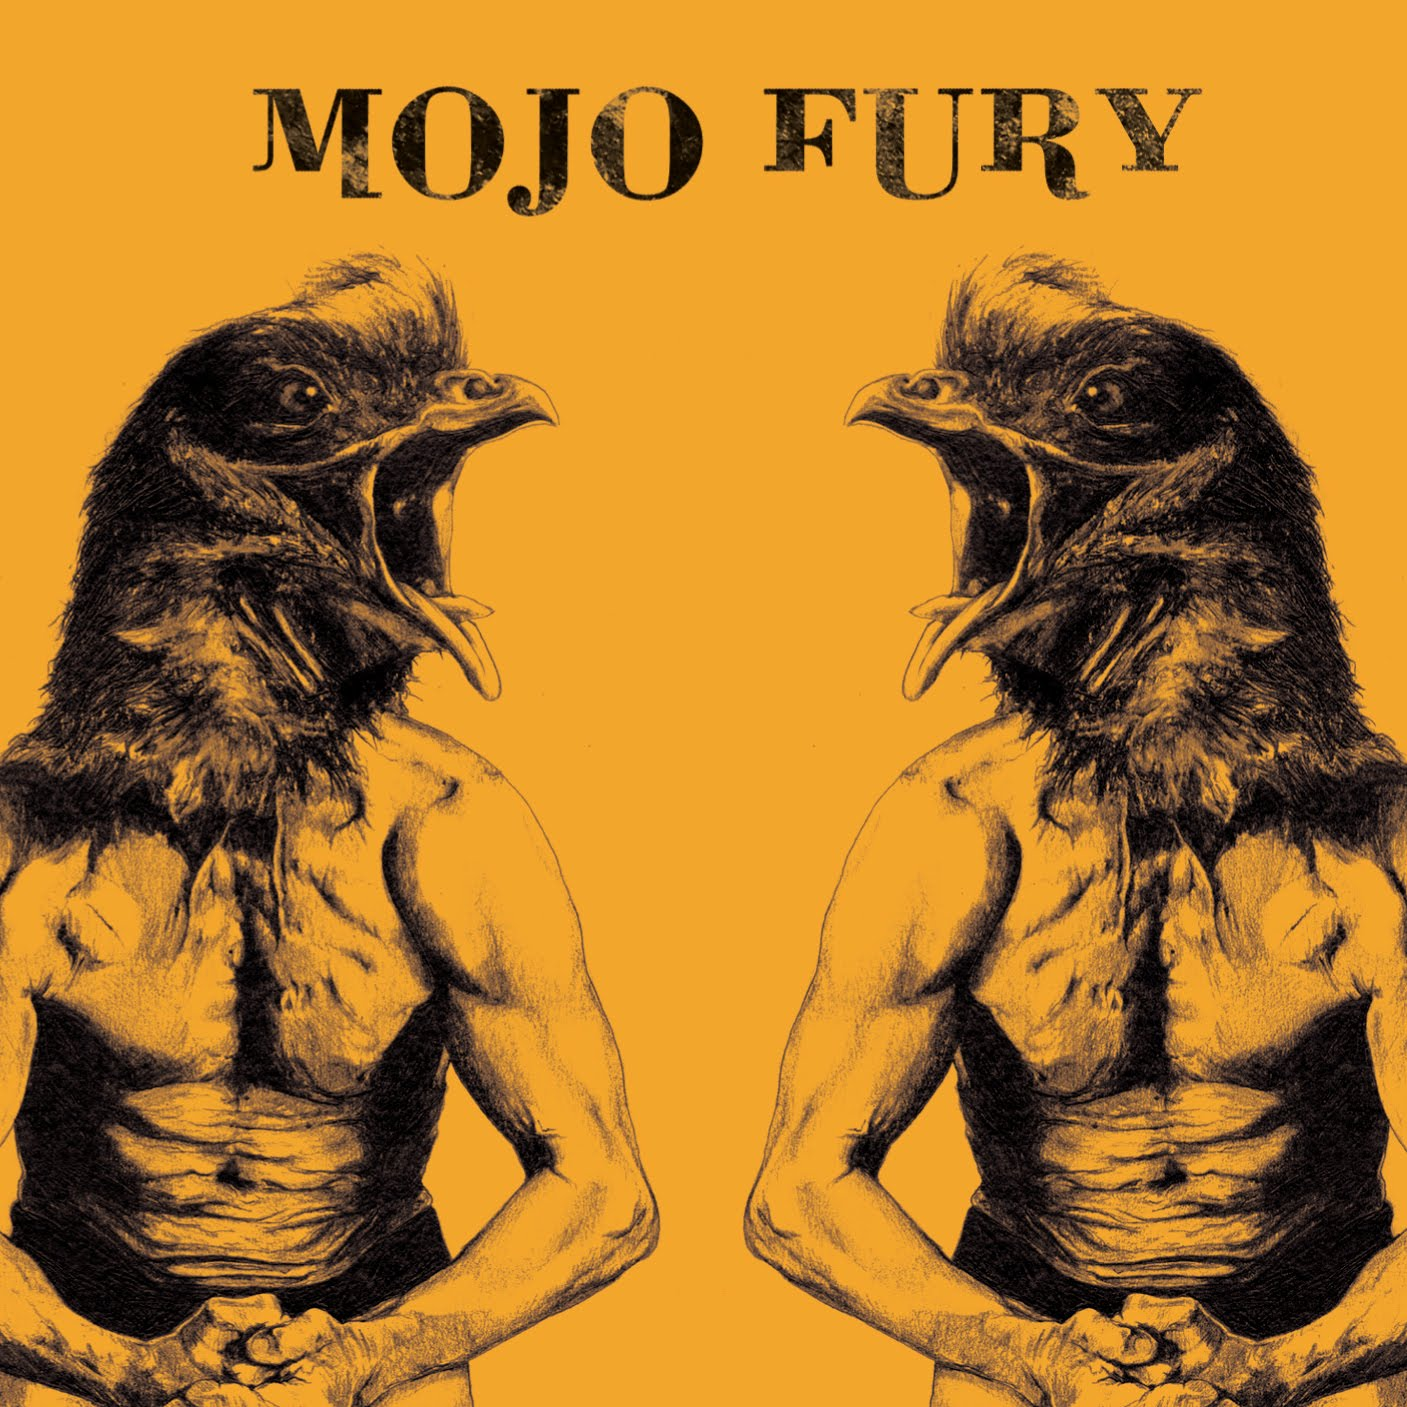 Mojo Music Studio http://www.explodinginsound.com/2012/04/mojo-fury-hit-studio-tour-dates.html